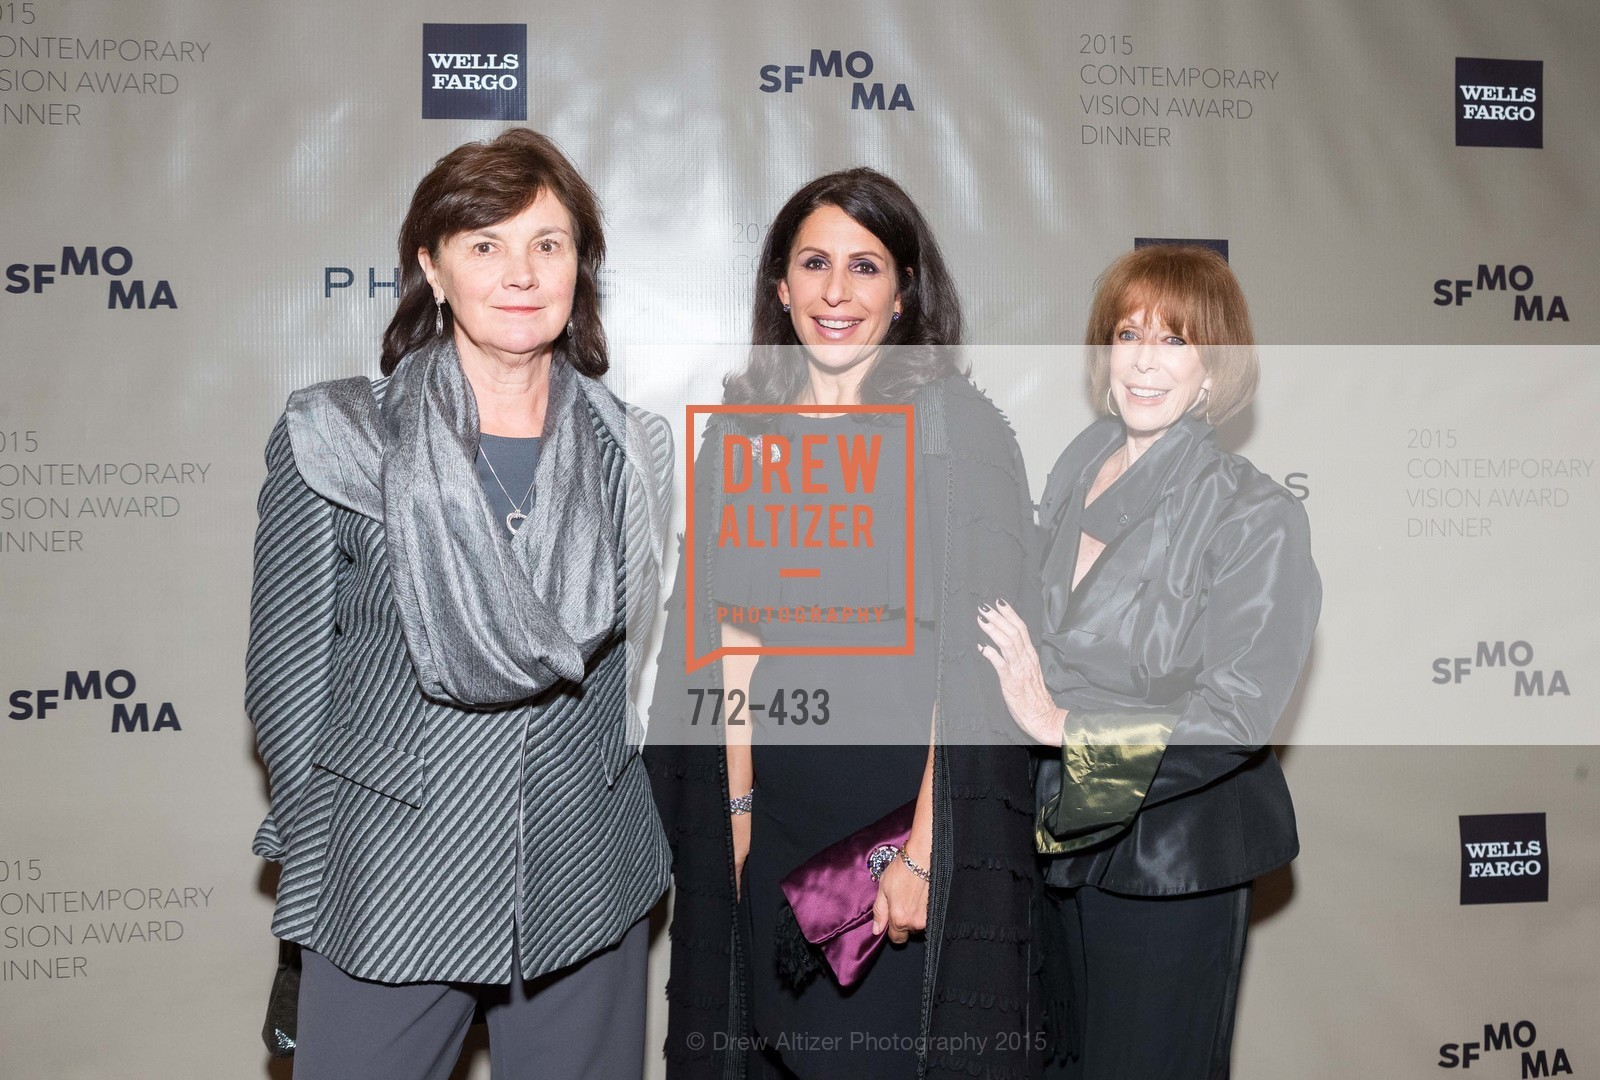 Marie Perchal, Lisa Grotts, Barbara Dickson, SFMOMA Contemporary Vision Award, Regency Ballroom. 1300 Van Ness, November 3rd, 2015,Drew Altizer, Drew Altizer Photography, full-service agency, private events, San Francisco photographer, photographer california